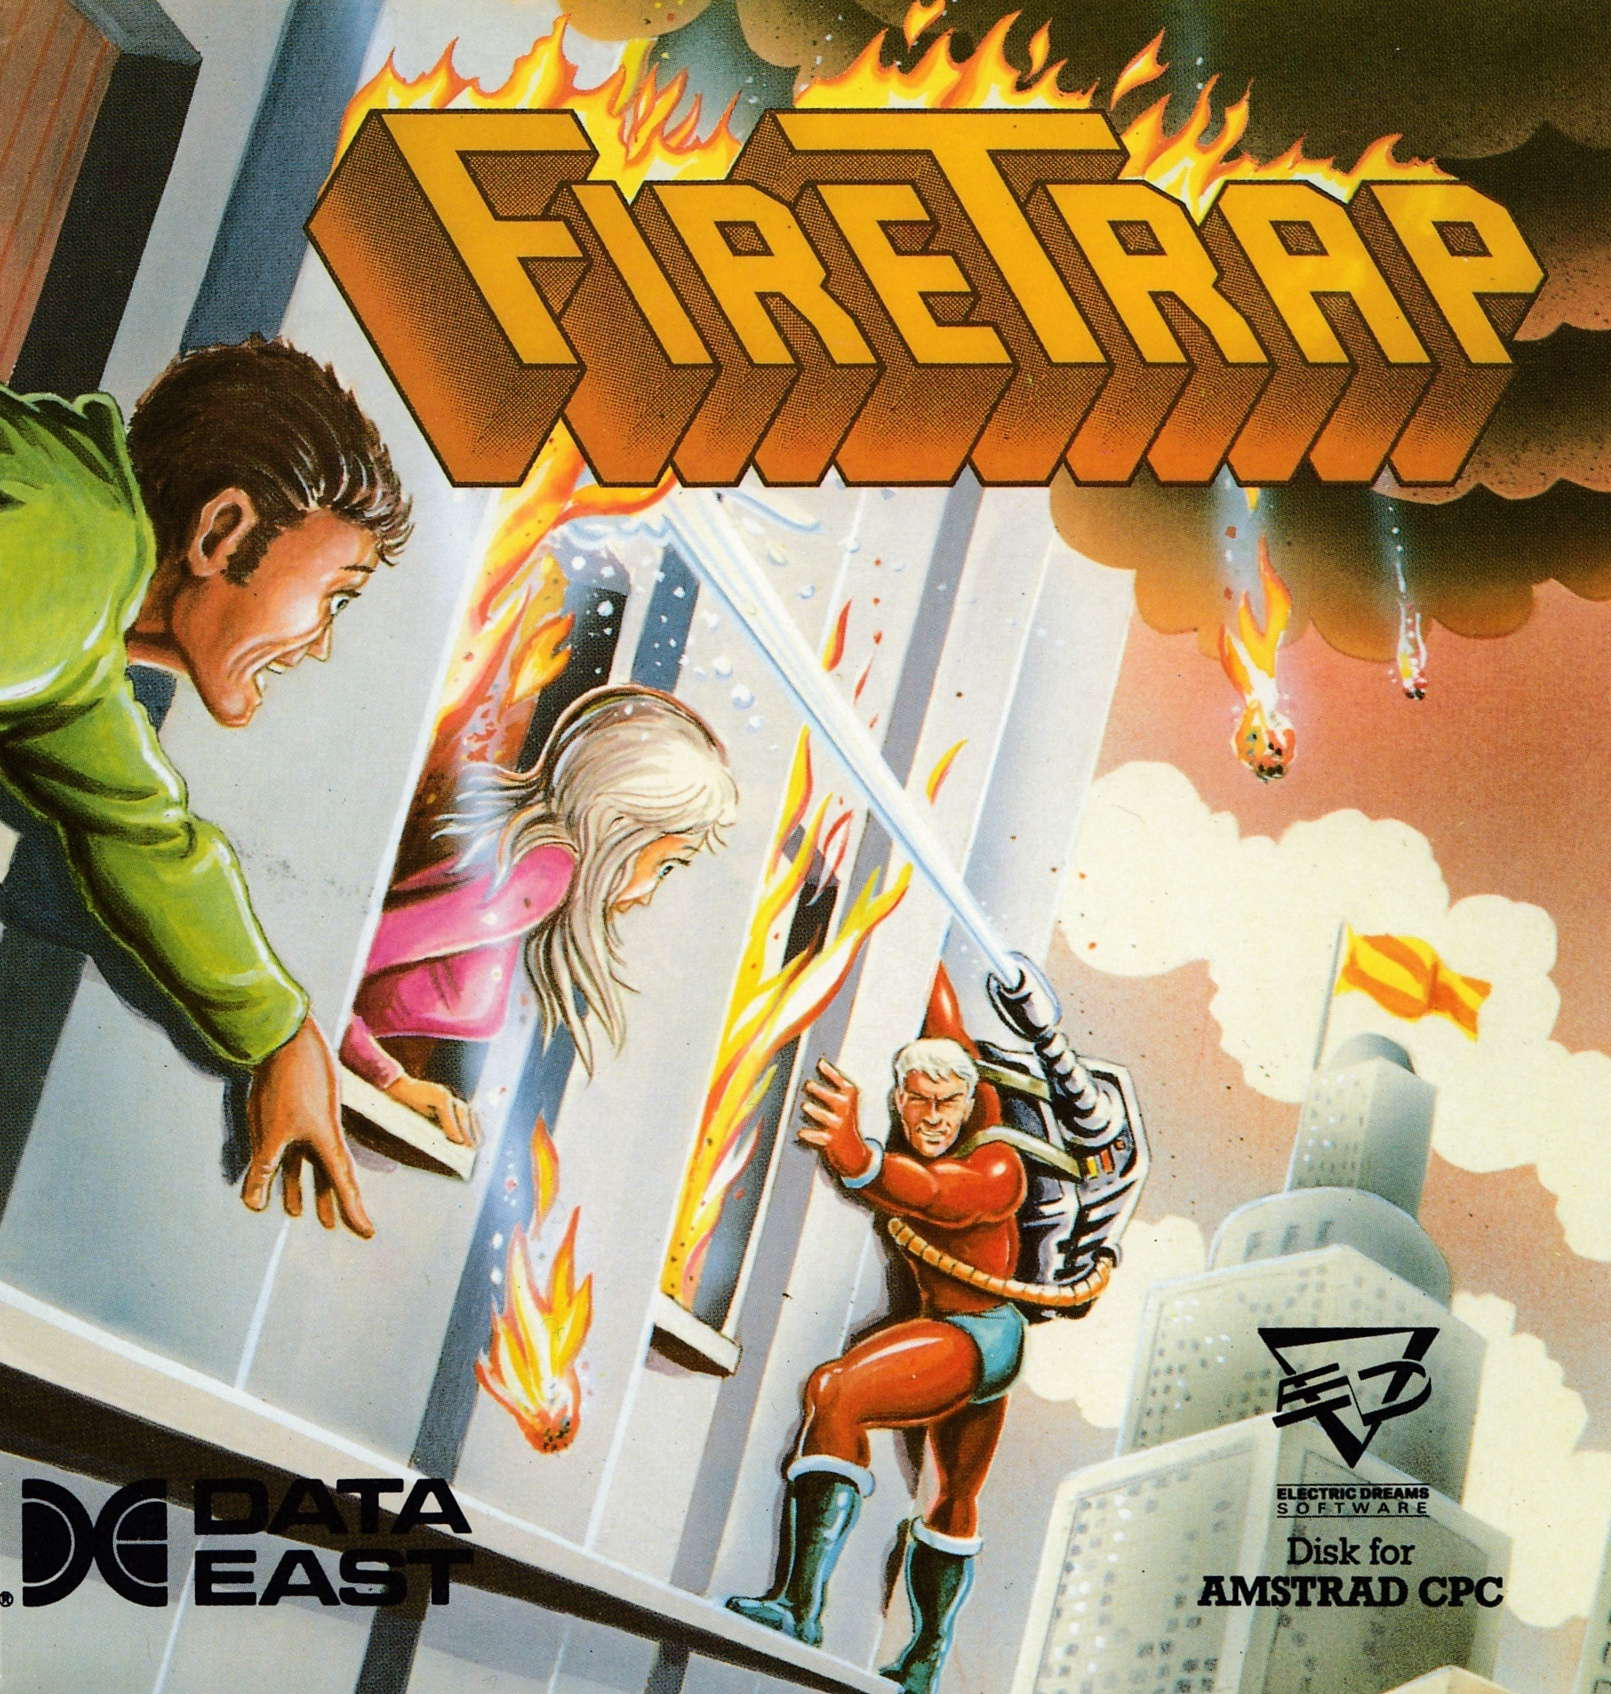 cover of the Amstrad CPC game Firetrap  by GameBase CPC